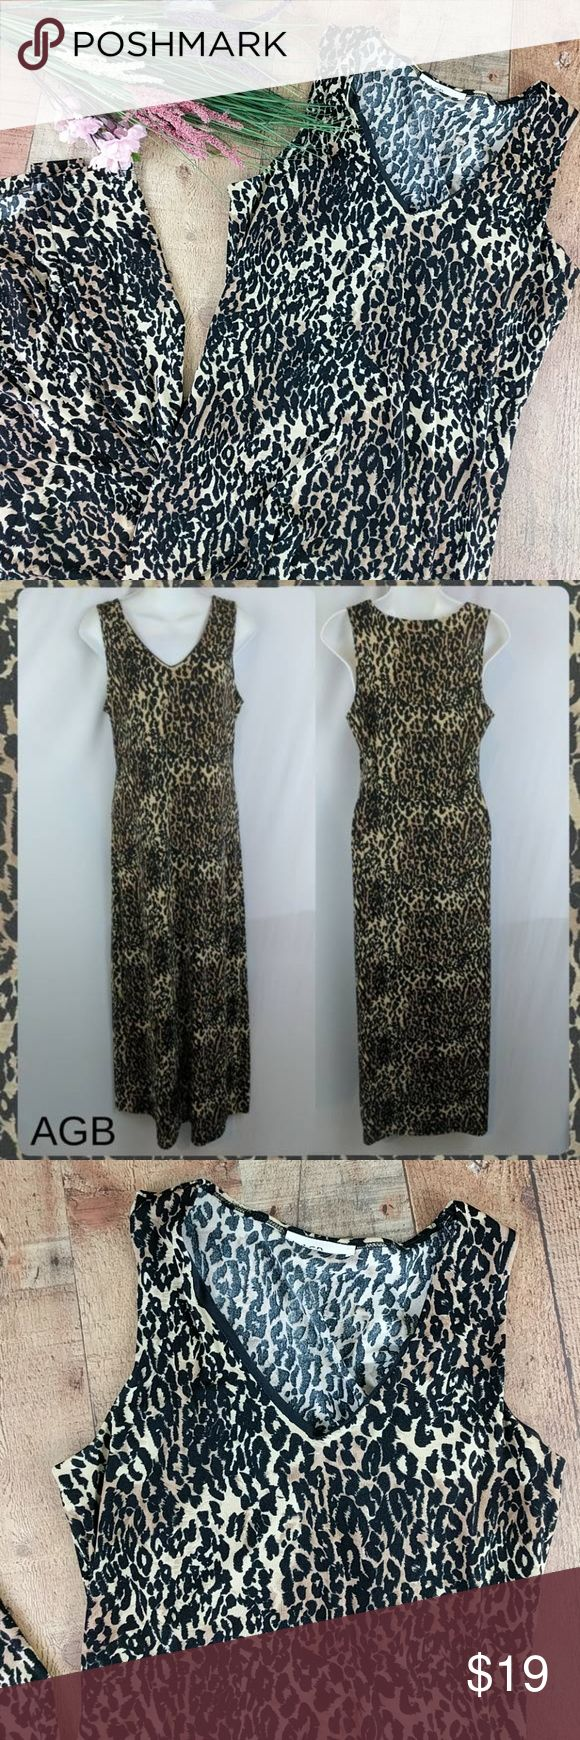 """Leopard Print Maxi Dress Sleeveless Sz M AGB leopard animal print. Very stretchy and flows beautifully. You can tell from the torn tag that it's AGB brand but there are no other tags. It measures at a size medium but please see all measurements for proper sizing. Chest around at underarms 36"""". Waist measures 33"""" around. Hips measure 40"""" around. Dress is contouring. Flattering fit with comfort stretch. Unlined but not sheer. Chest area is lined. Length from shoulder 53"""". Clean, excellent…"""